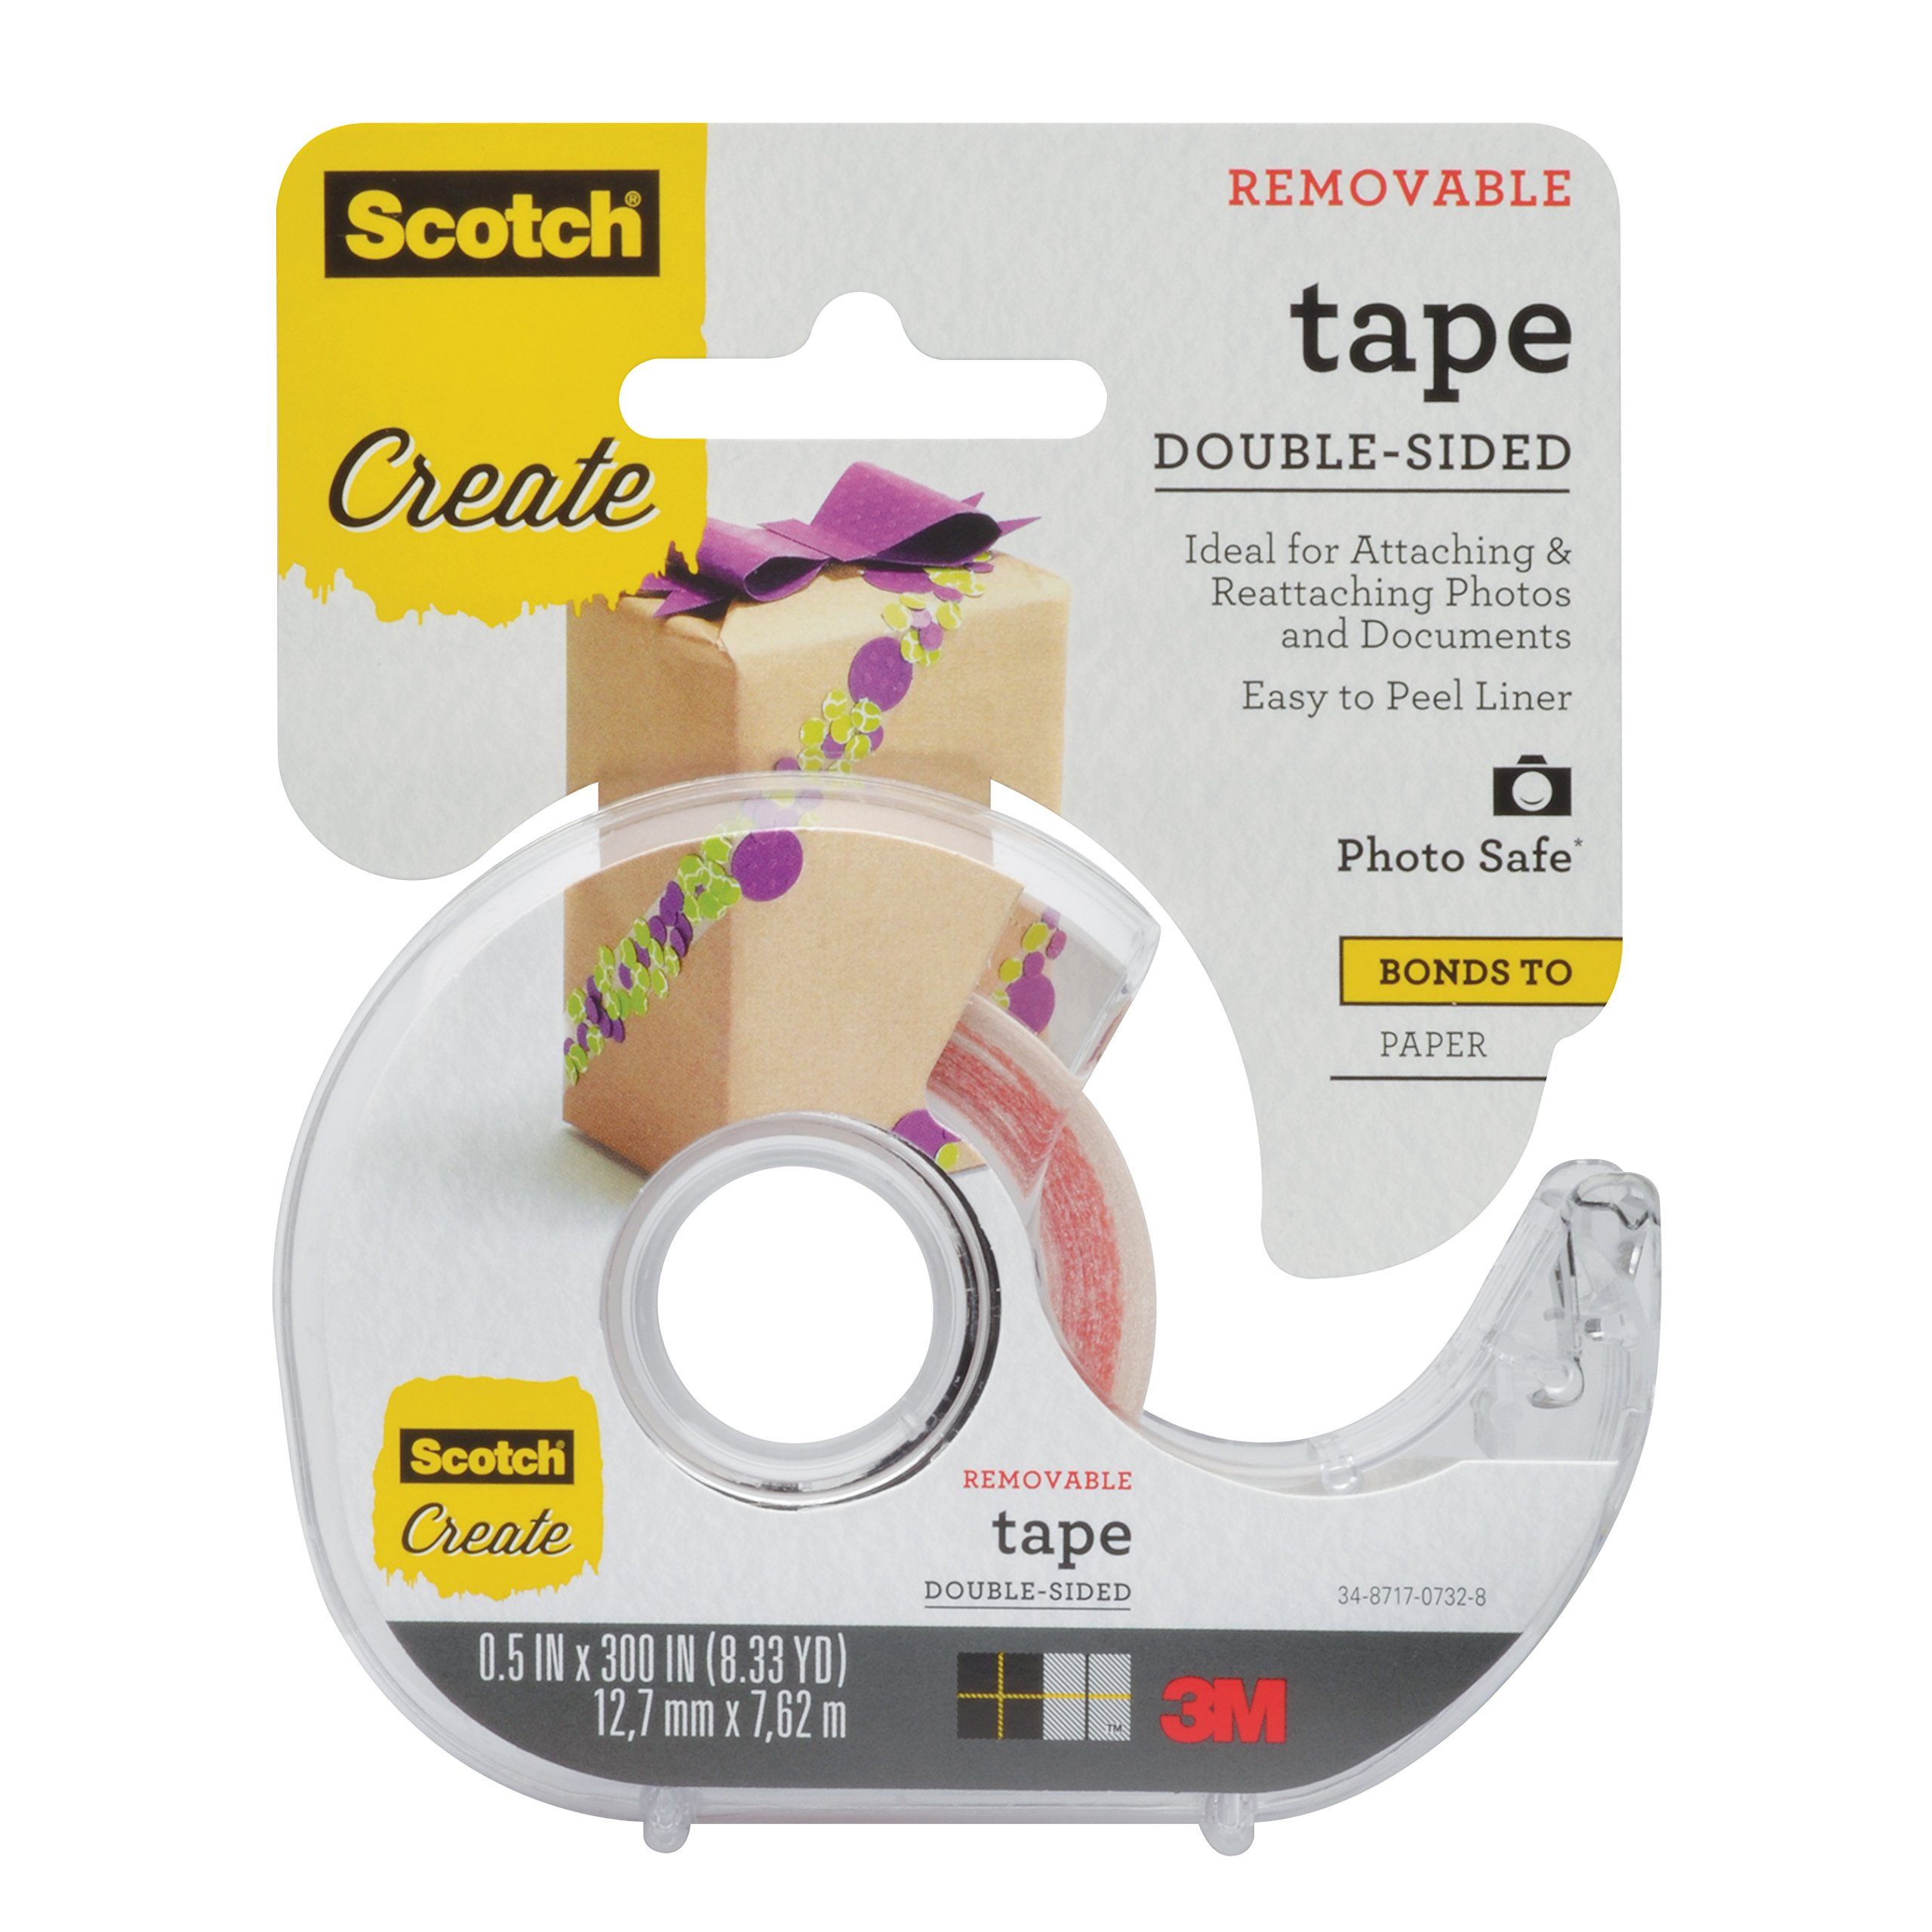 Scotch Create Double-Sided Removable Tape, Photo Safe and Acid Free, 1/2 in x 300 in, 4 Rolls per Pack (2002-CFT-4) by Scotch Brand